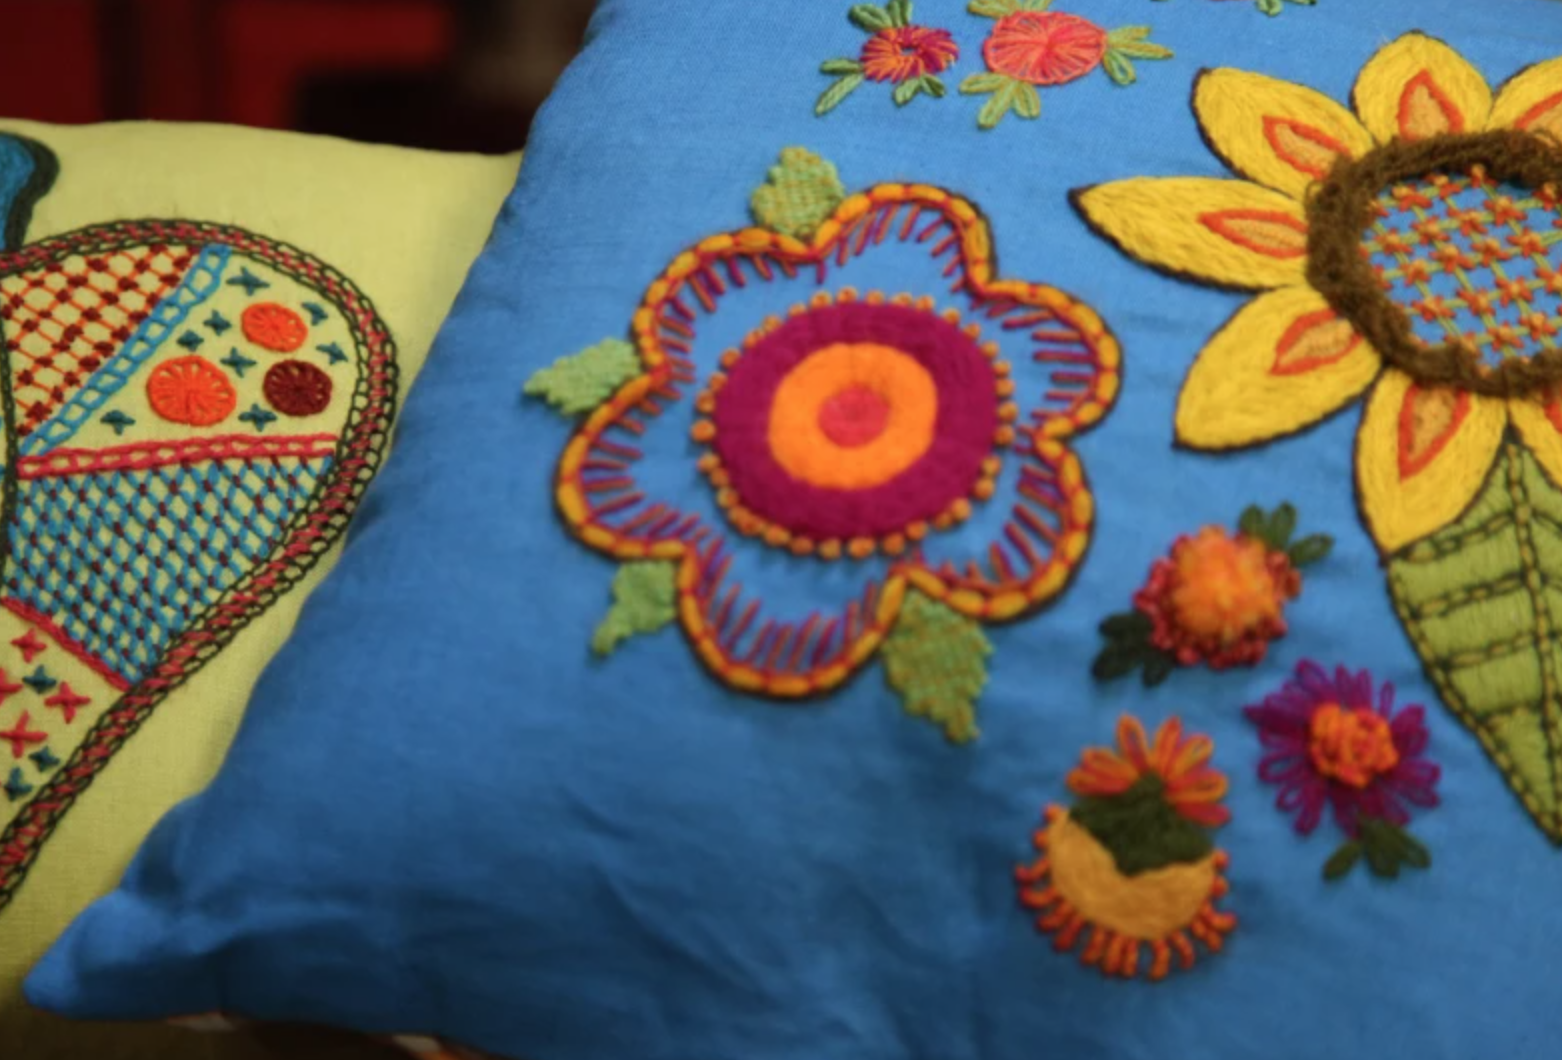 crewel embroidery on pillows